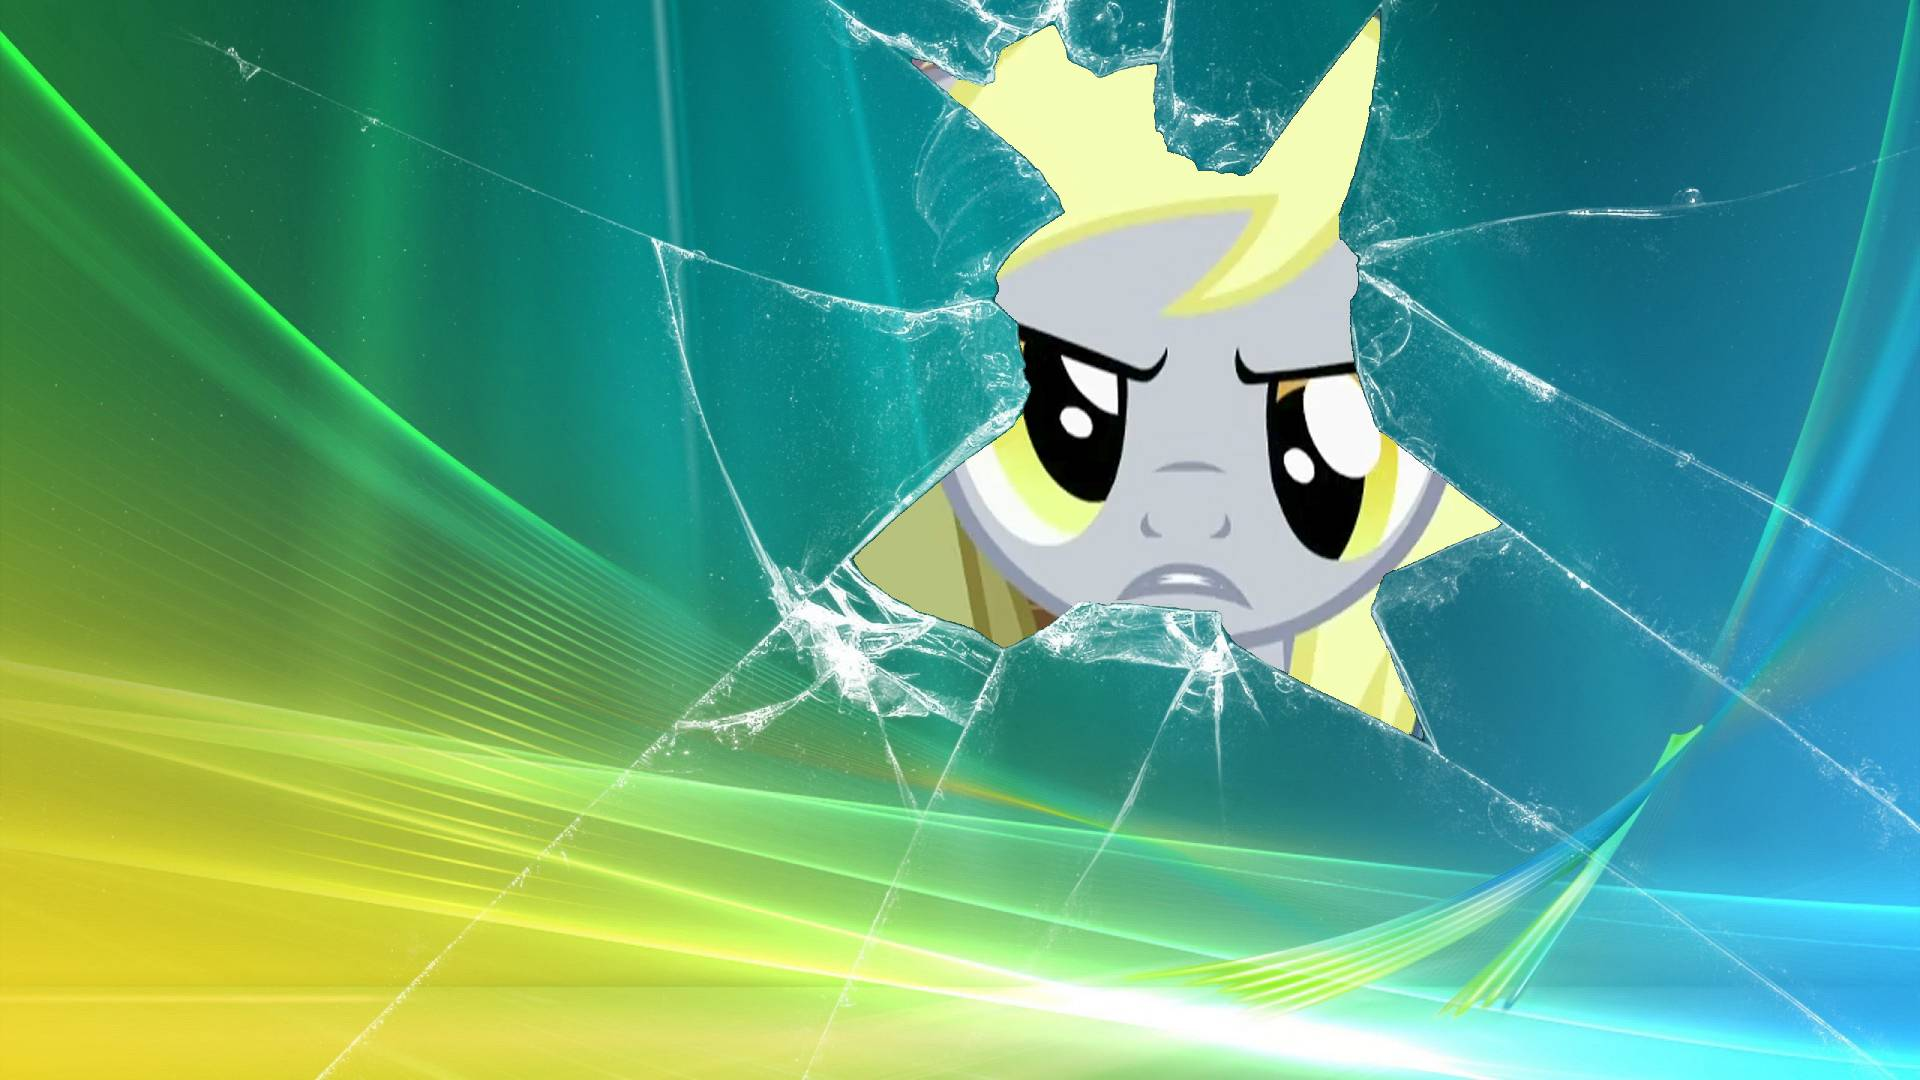 Derpy Windows Wallpaper Images Pictures   Becuo 1920x1080